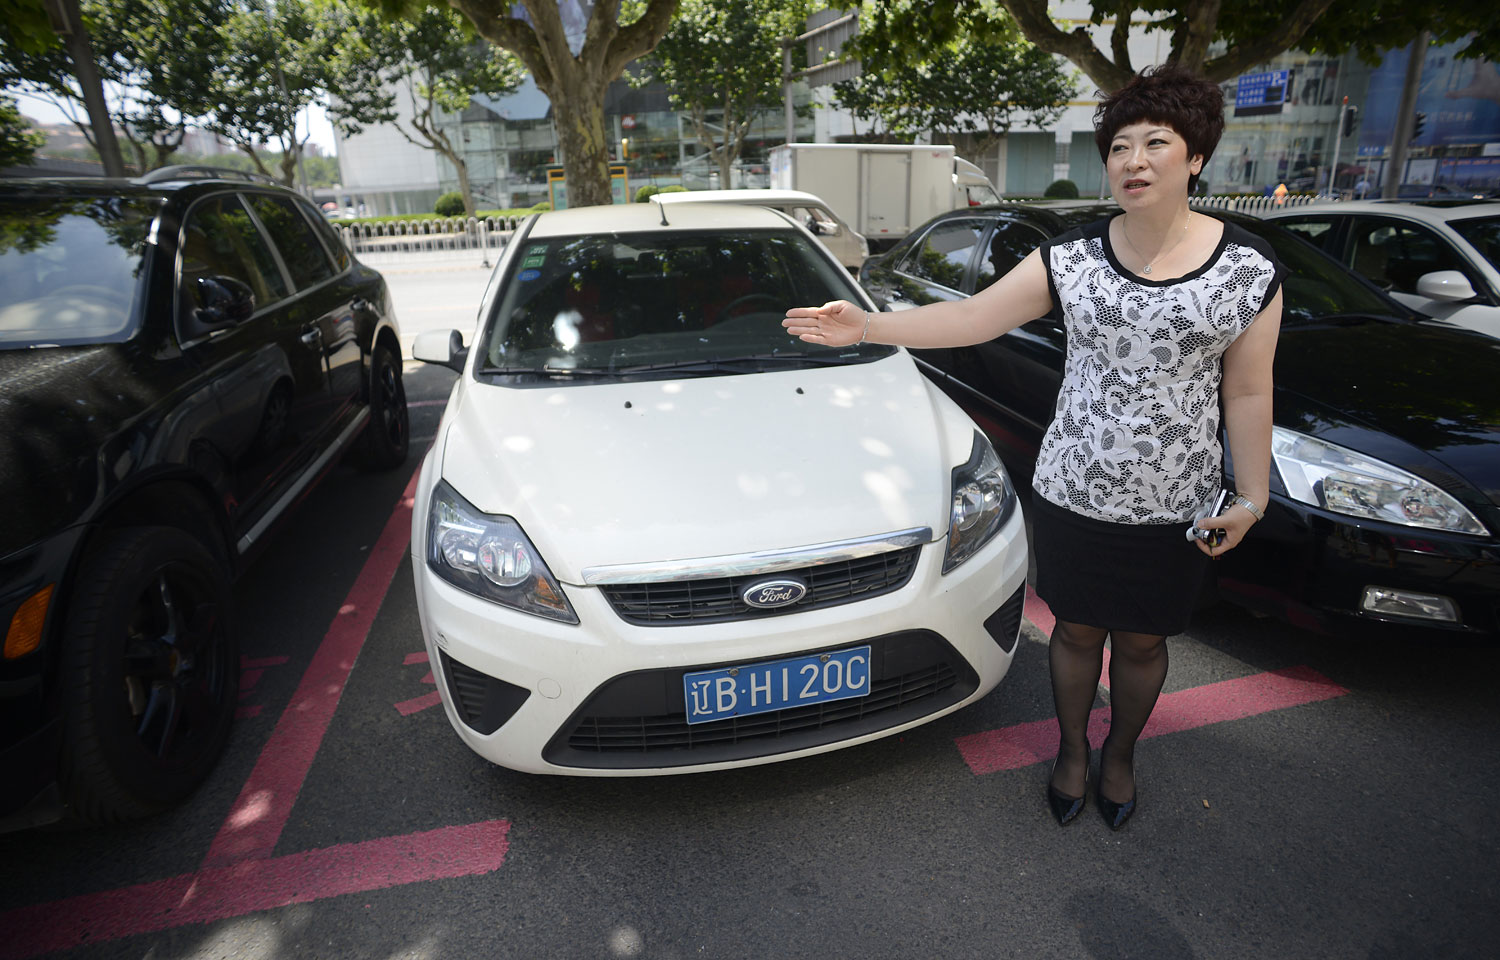 Mall manager Yang Hongjun in front of cars parked in pink spaces in front of the Dashijiedaduhui, or World Metropolis centre, in the seaport city of Dalian, July 7, 2014. The parking spaces are distinctive: marked out in pink, around 30 centimetres wider than normal, and signposted  Respectfully reserved for women .